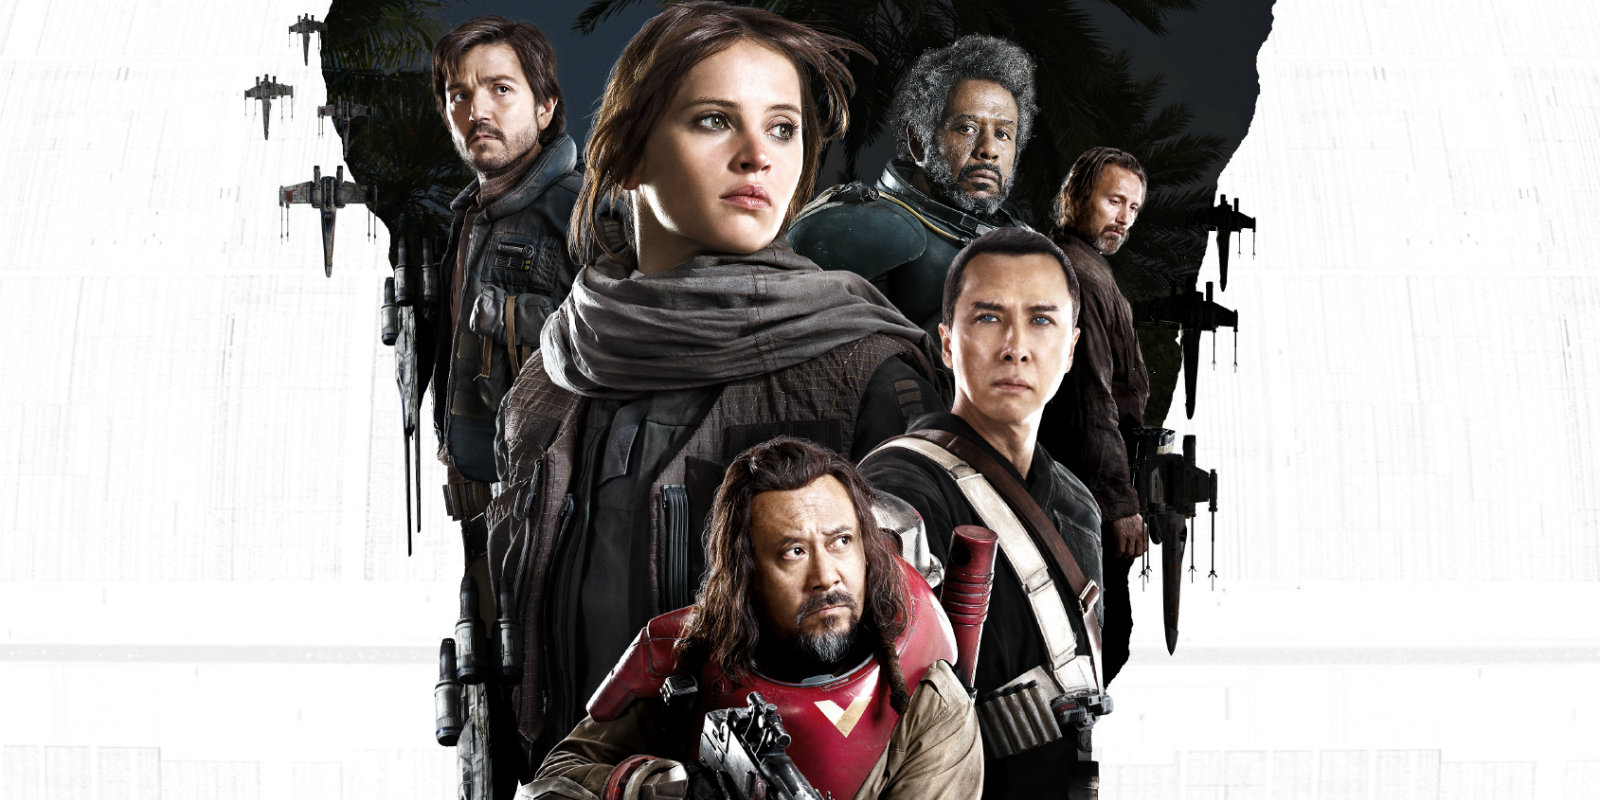 Star Wars: Rogue One - IMAX poster cropped